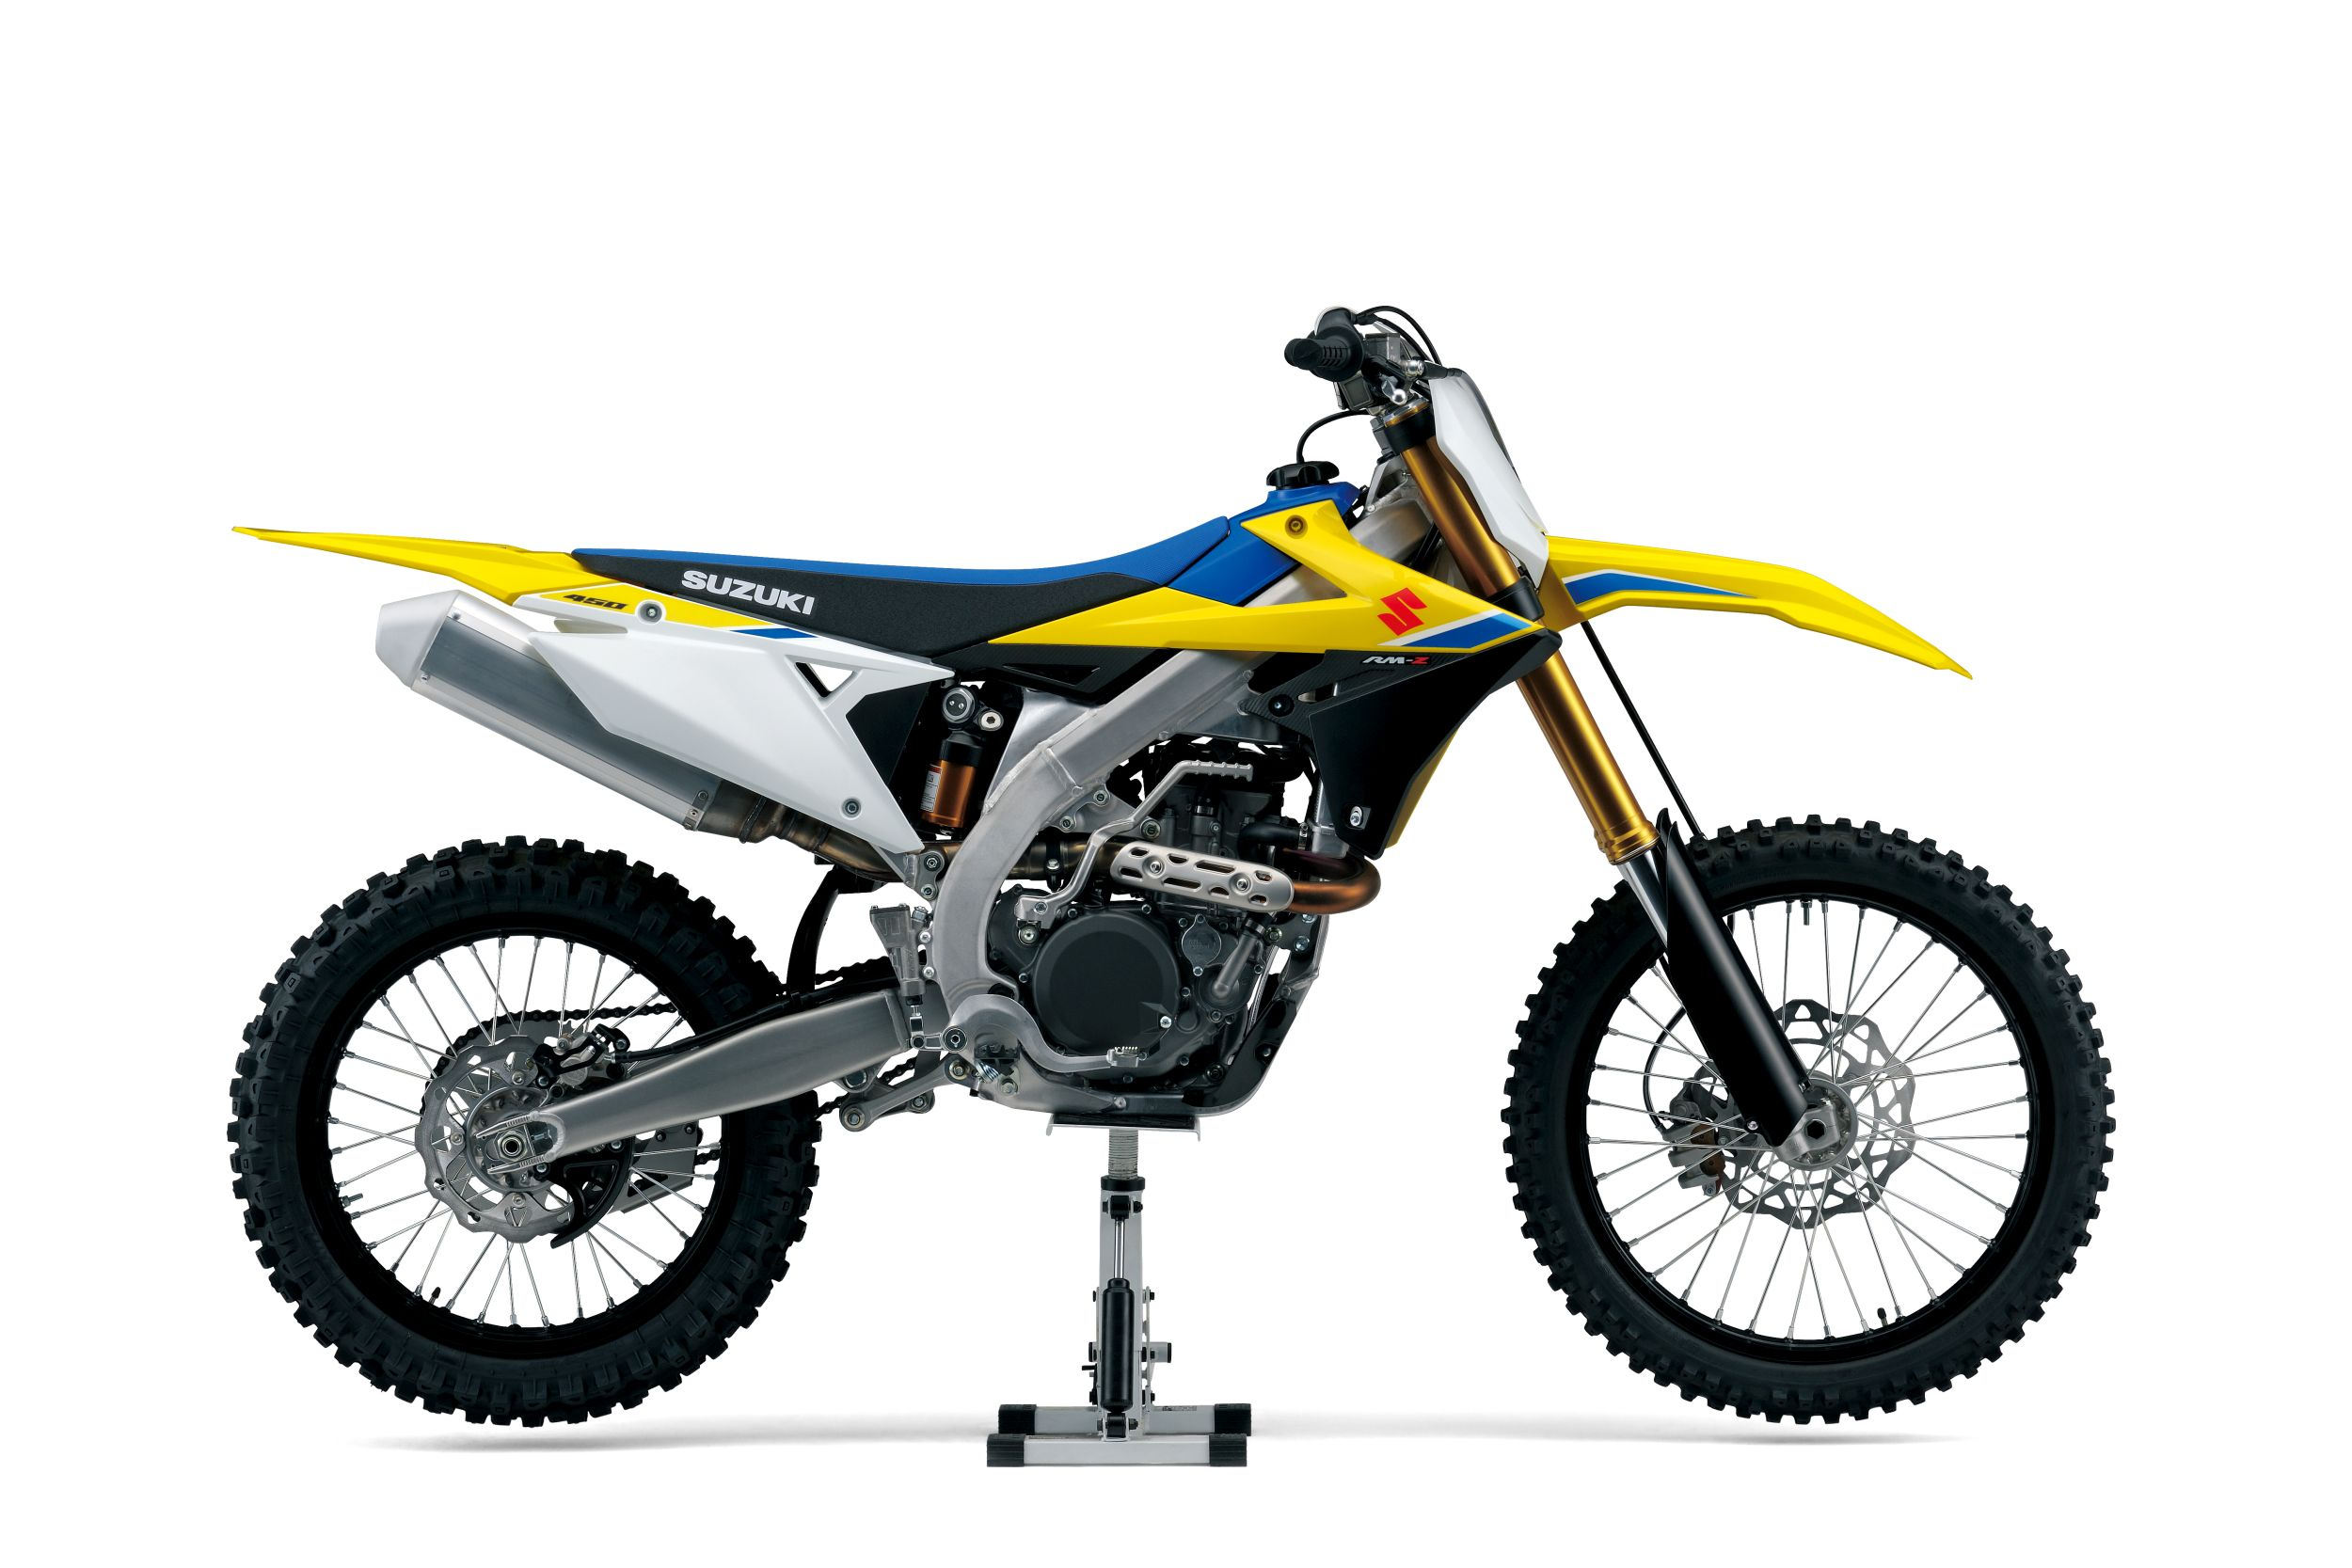 motorrad occasion suzuki rm z450 kaufen. Black Bedroom Furniture Sets. Home Design Ideas